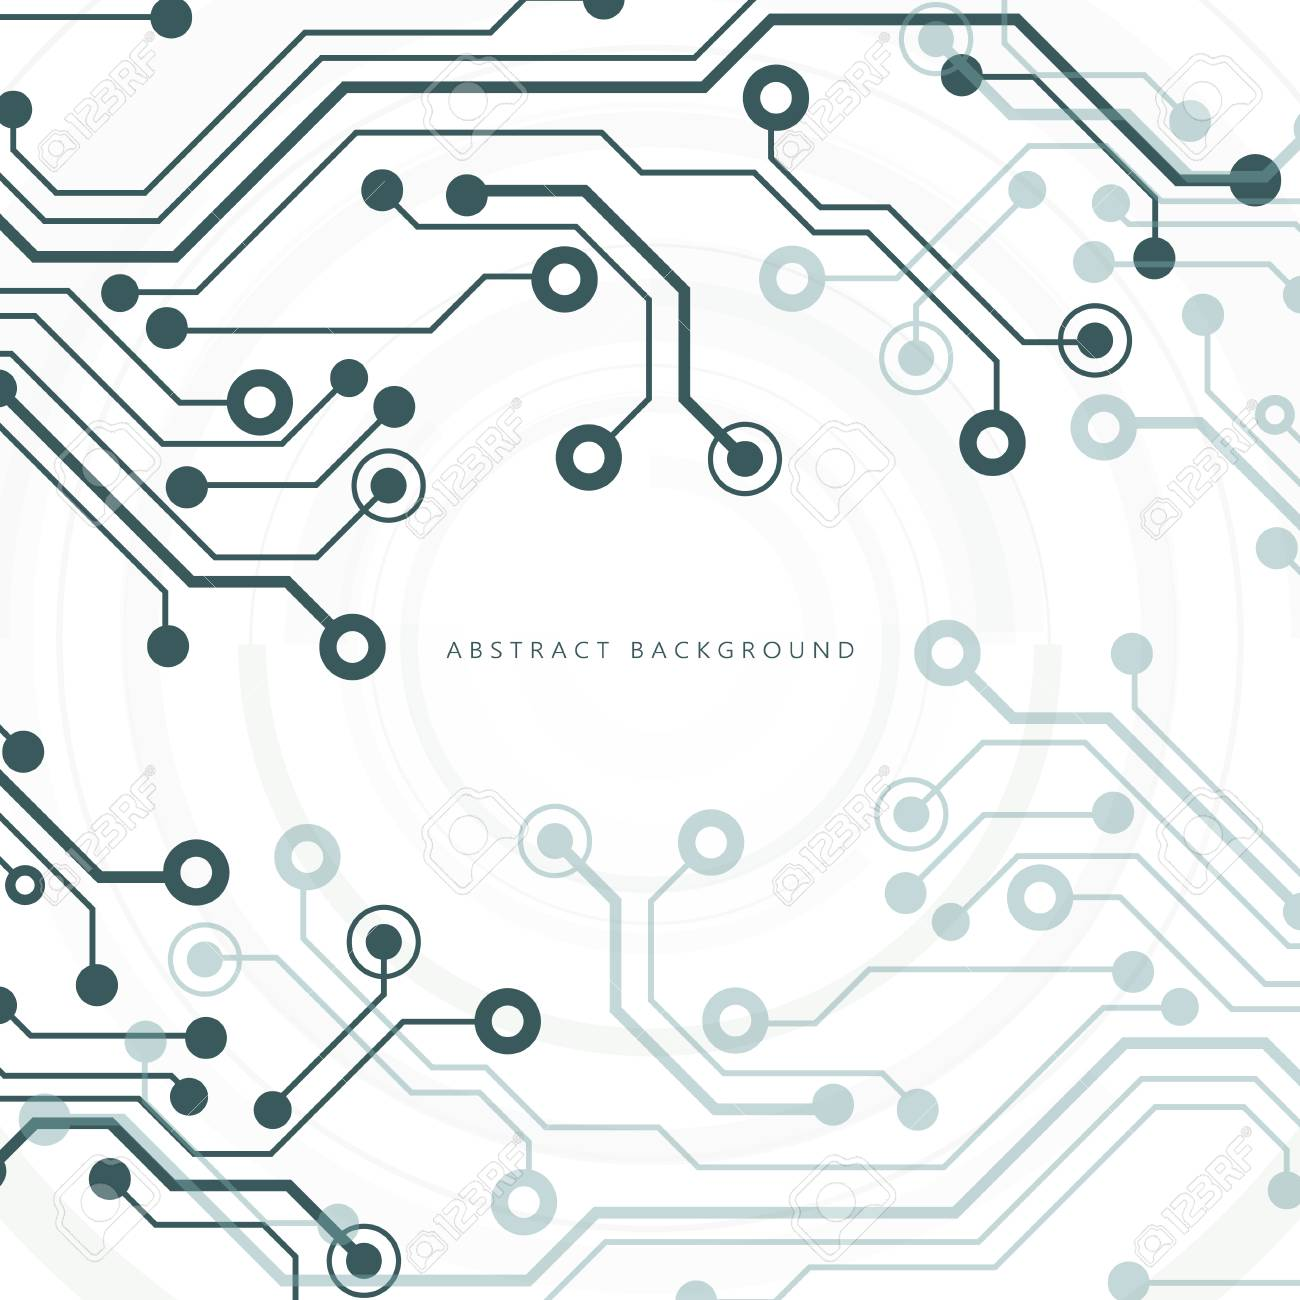 Circuit board, technology background. Vector illustration. - 93898185